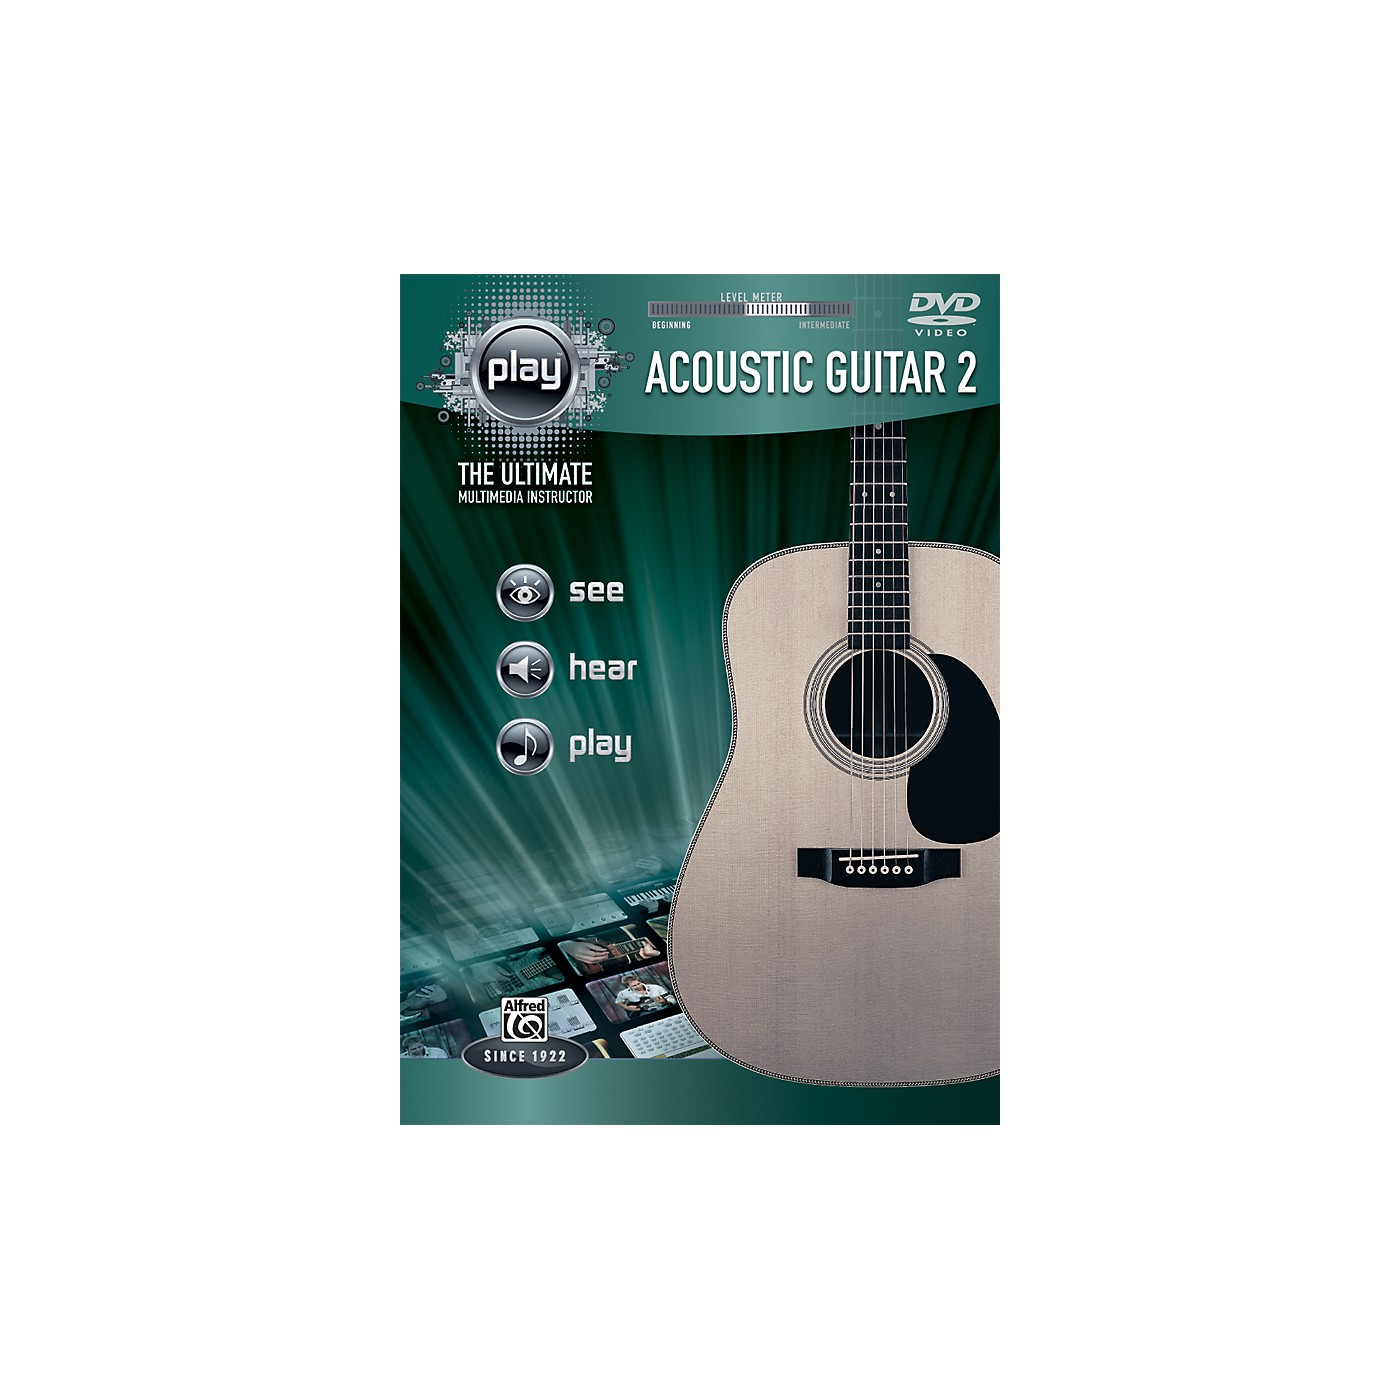 Alfred PLAY Series  Acoustic Guitar 2 DVD thumbnail